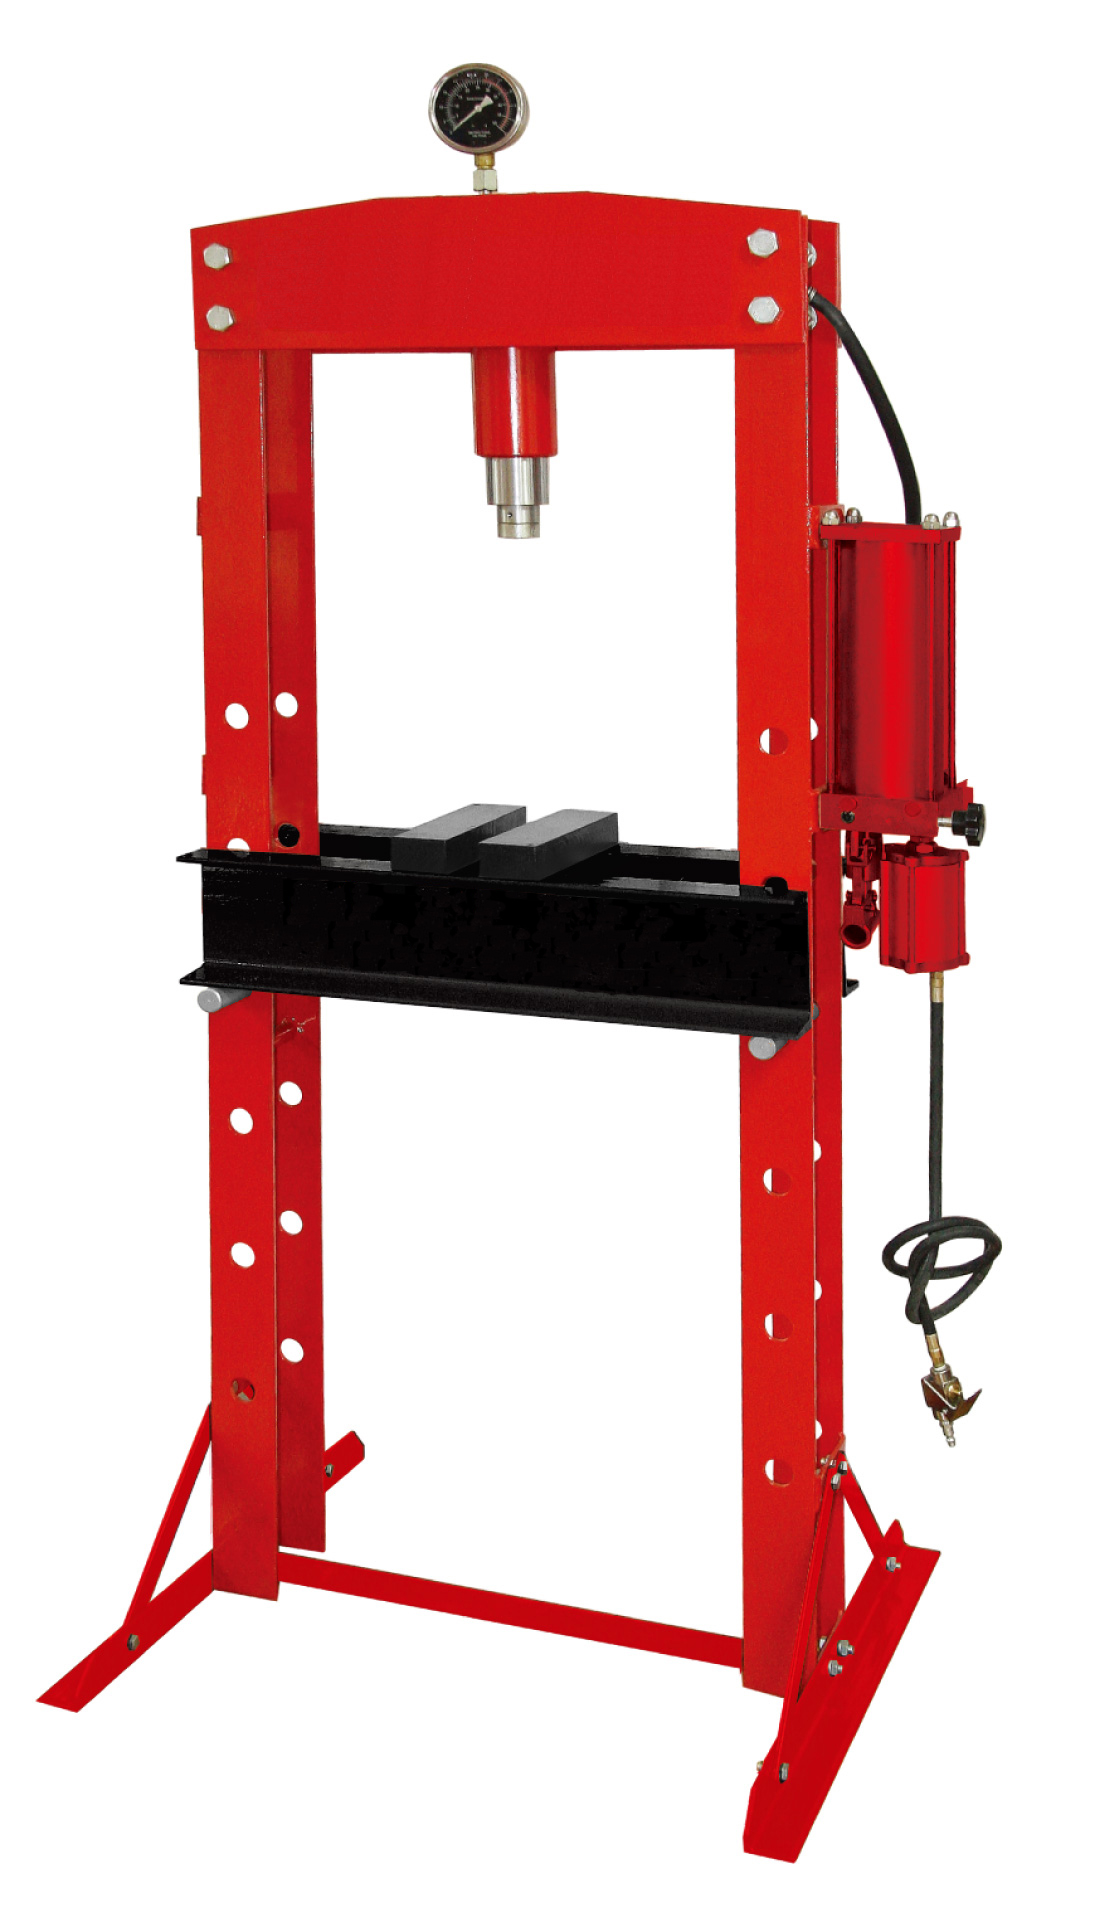 JMSP-9030 Hydraulic Shop Press